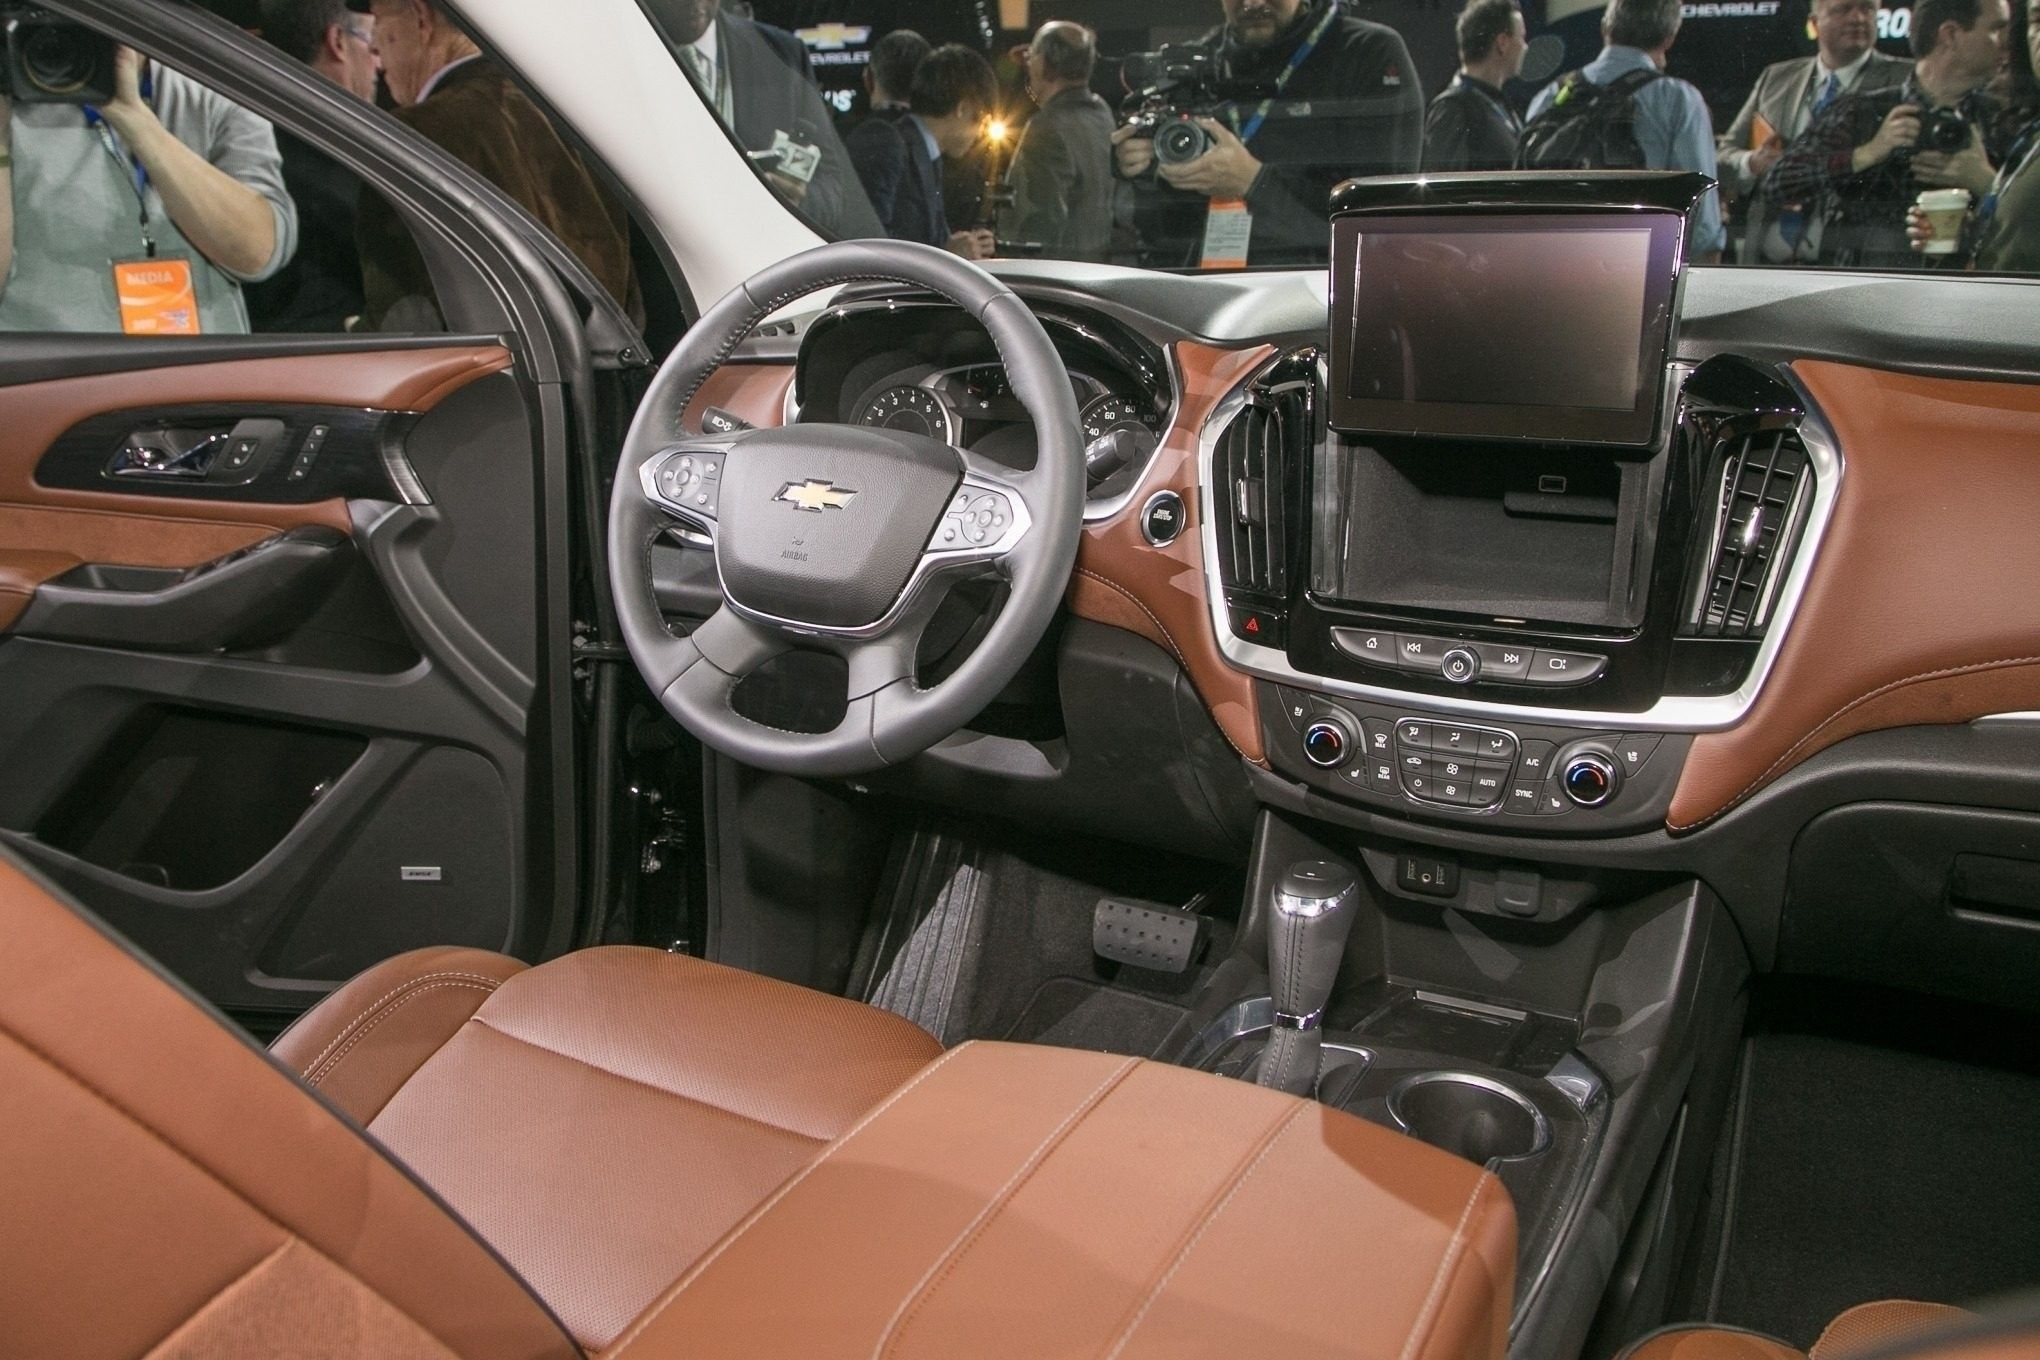 2019 Chevrolet Traverse Ltz New Release Car Review 2019 Chevrolet Traverse Chevrolet Traverse Interior Limousine Interior